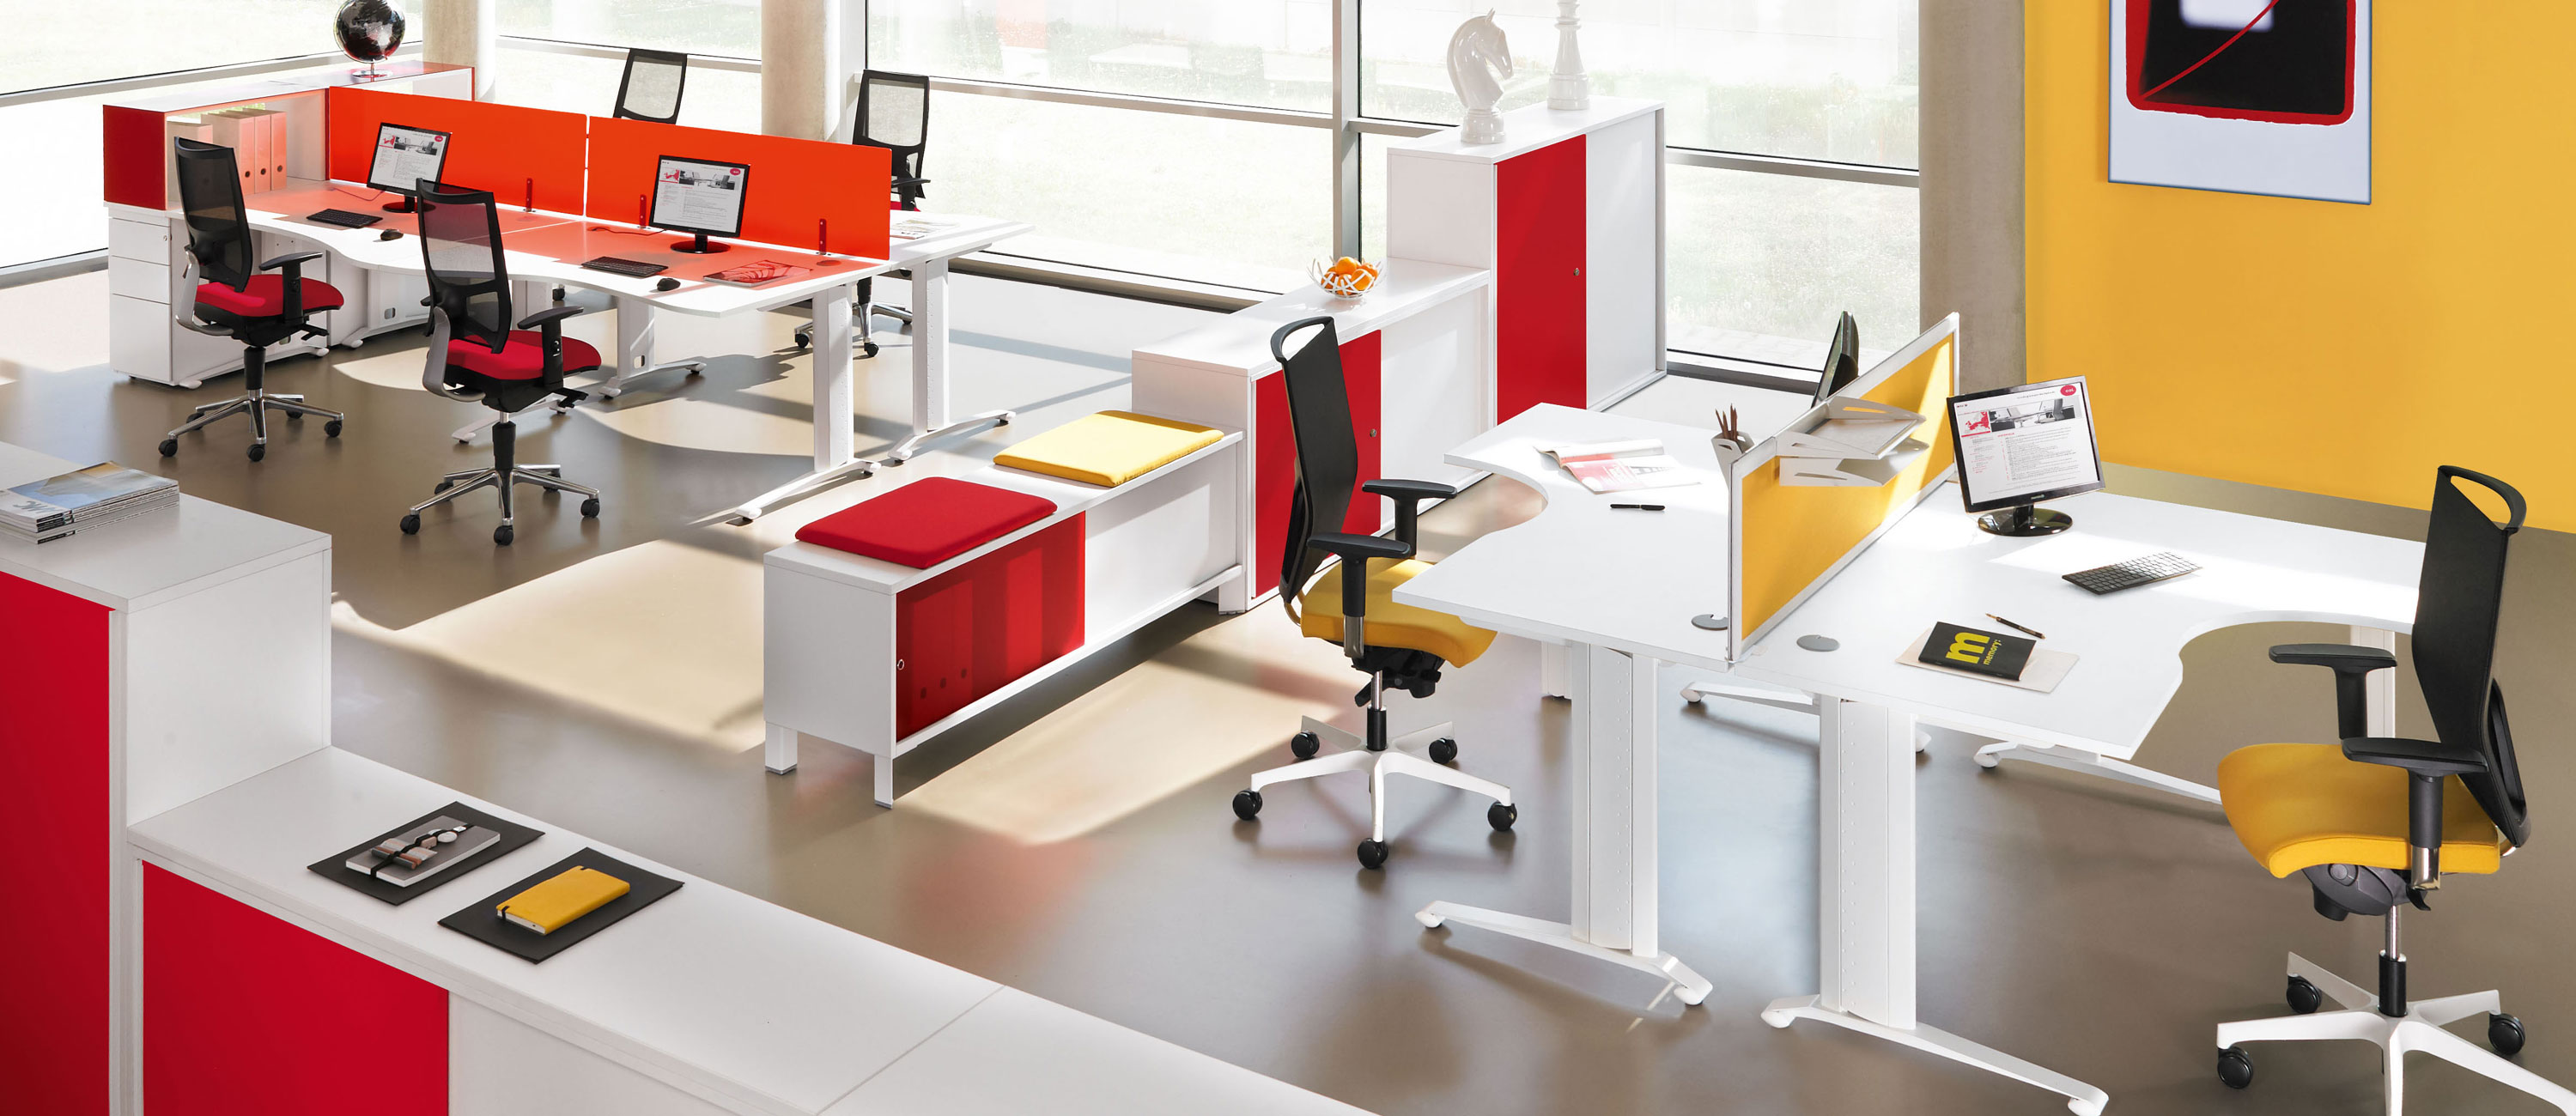 How to save money without giving up style for office furniture blog pirate